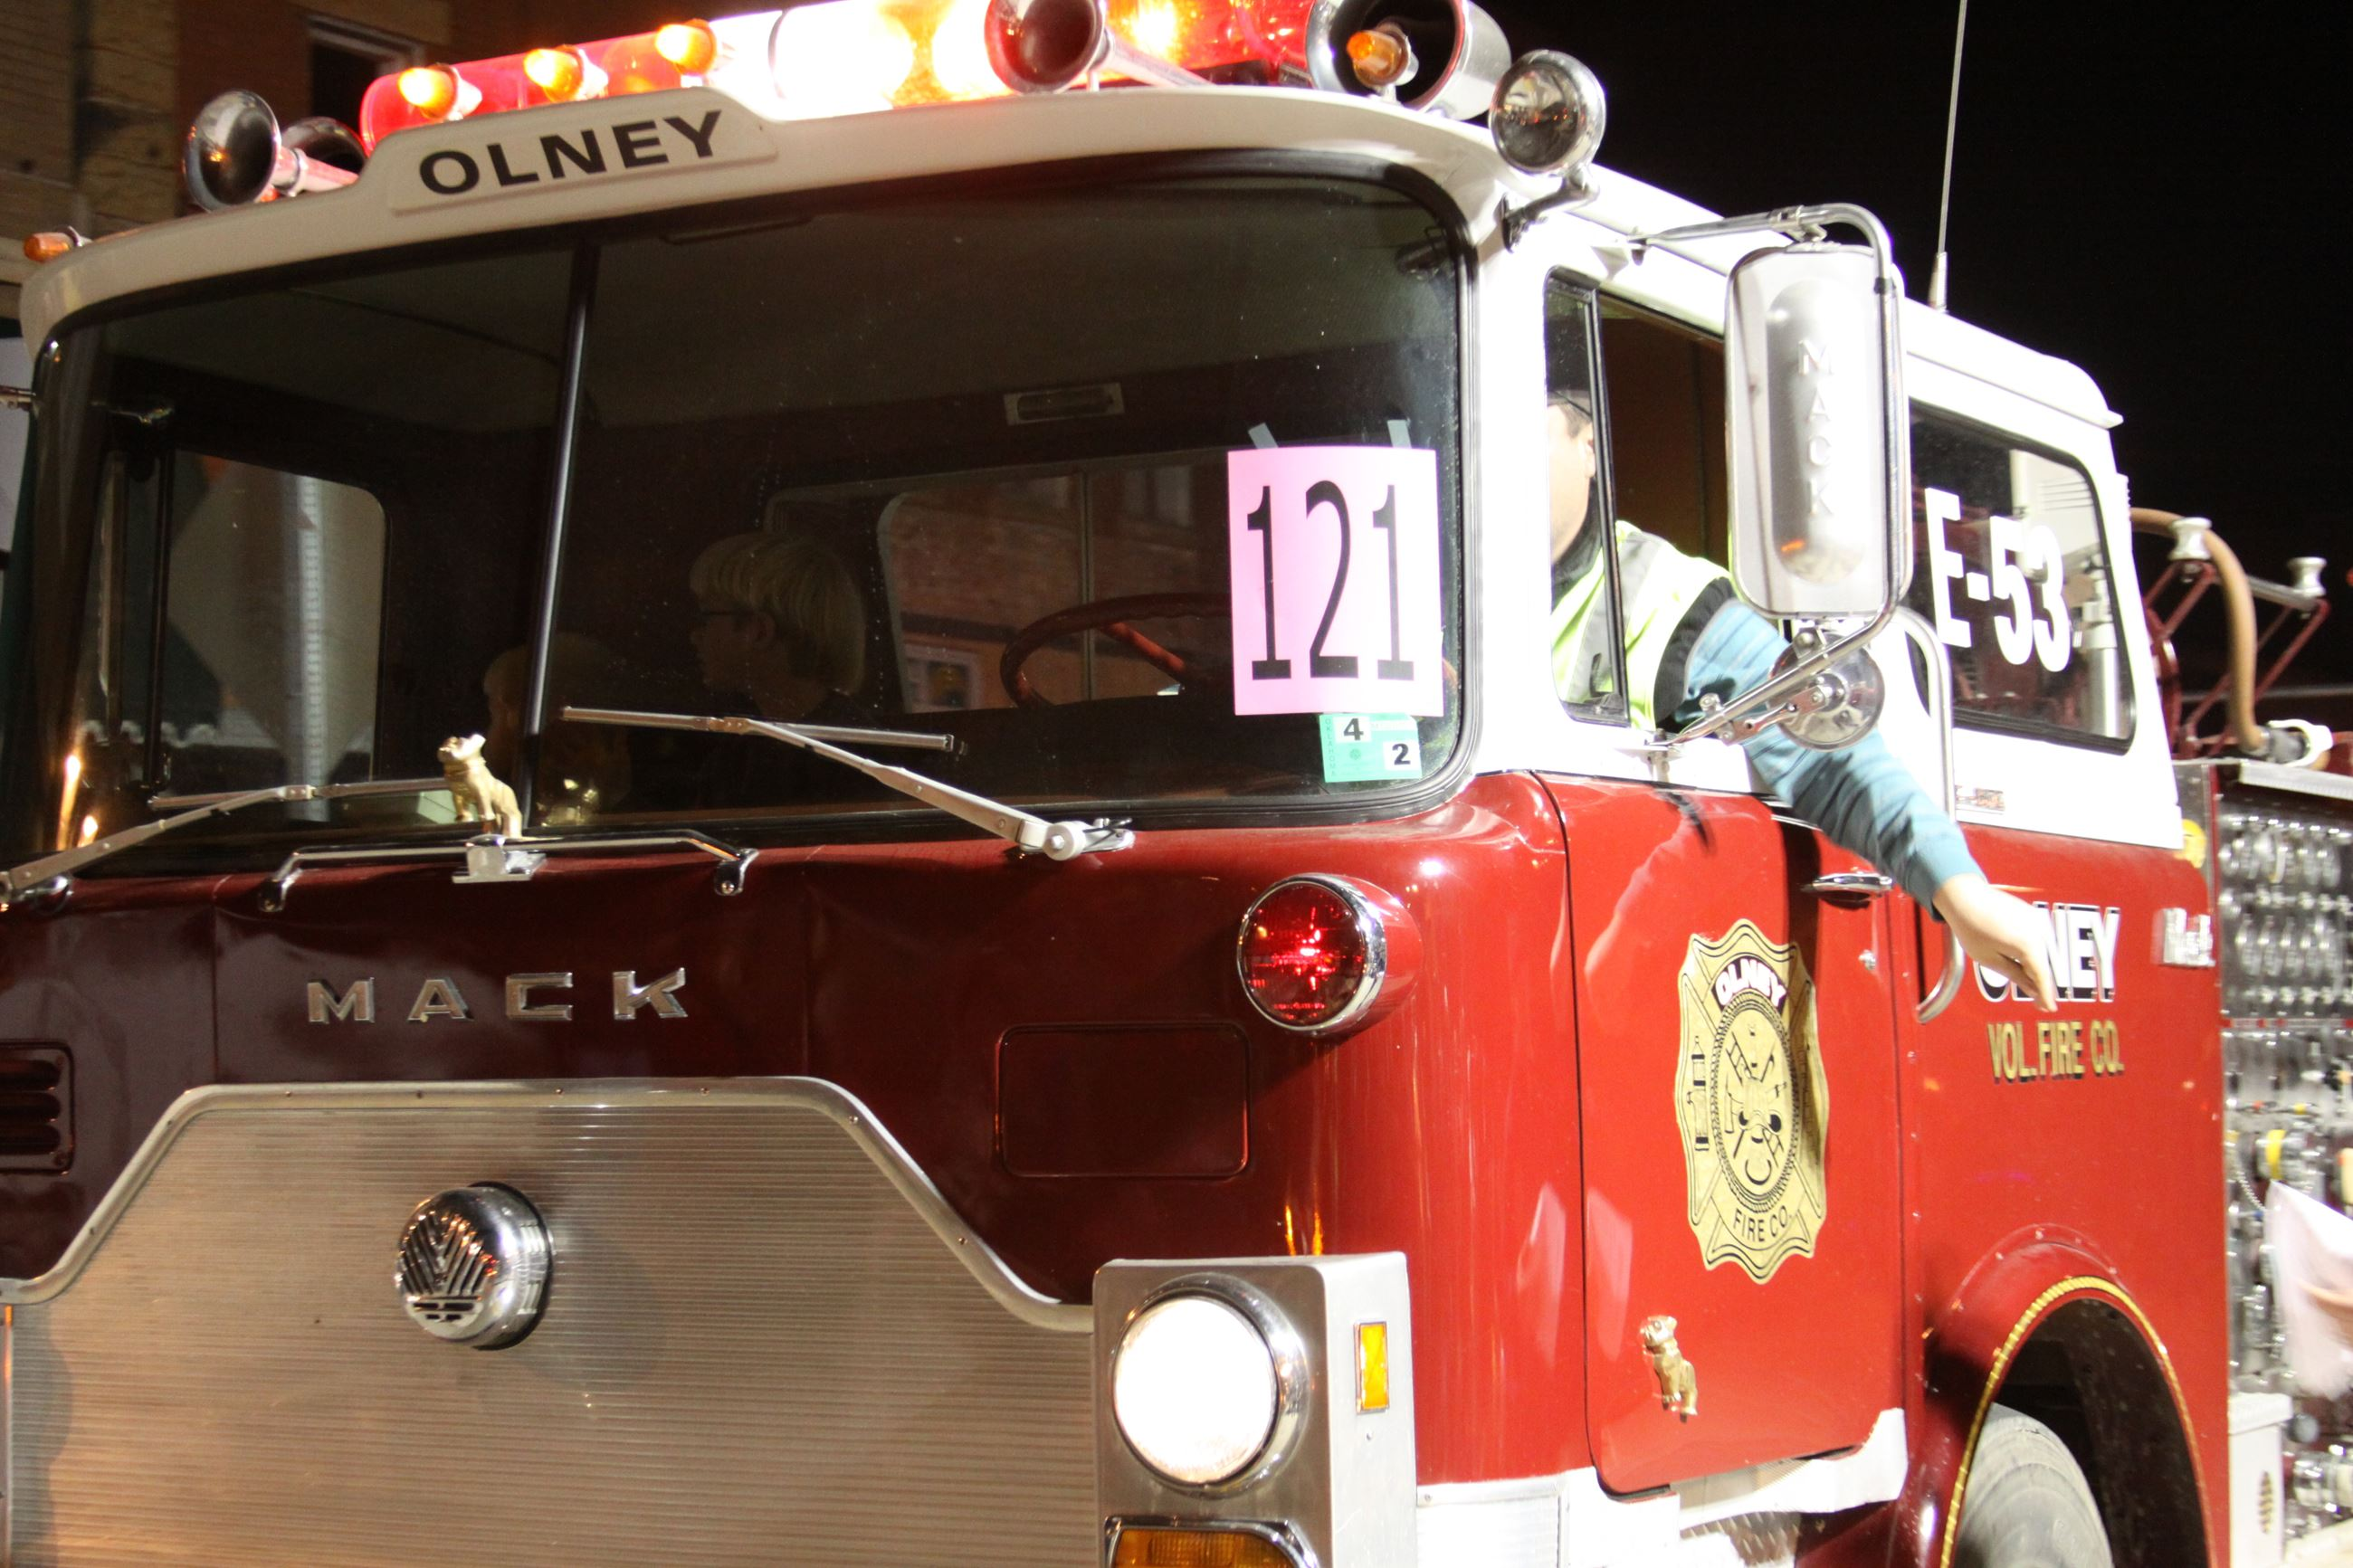 121 - Olney Fire Department